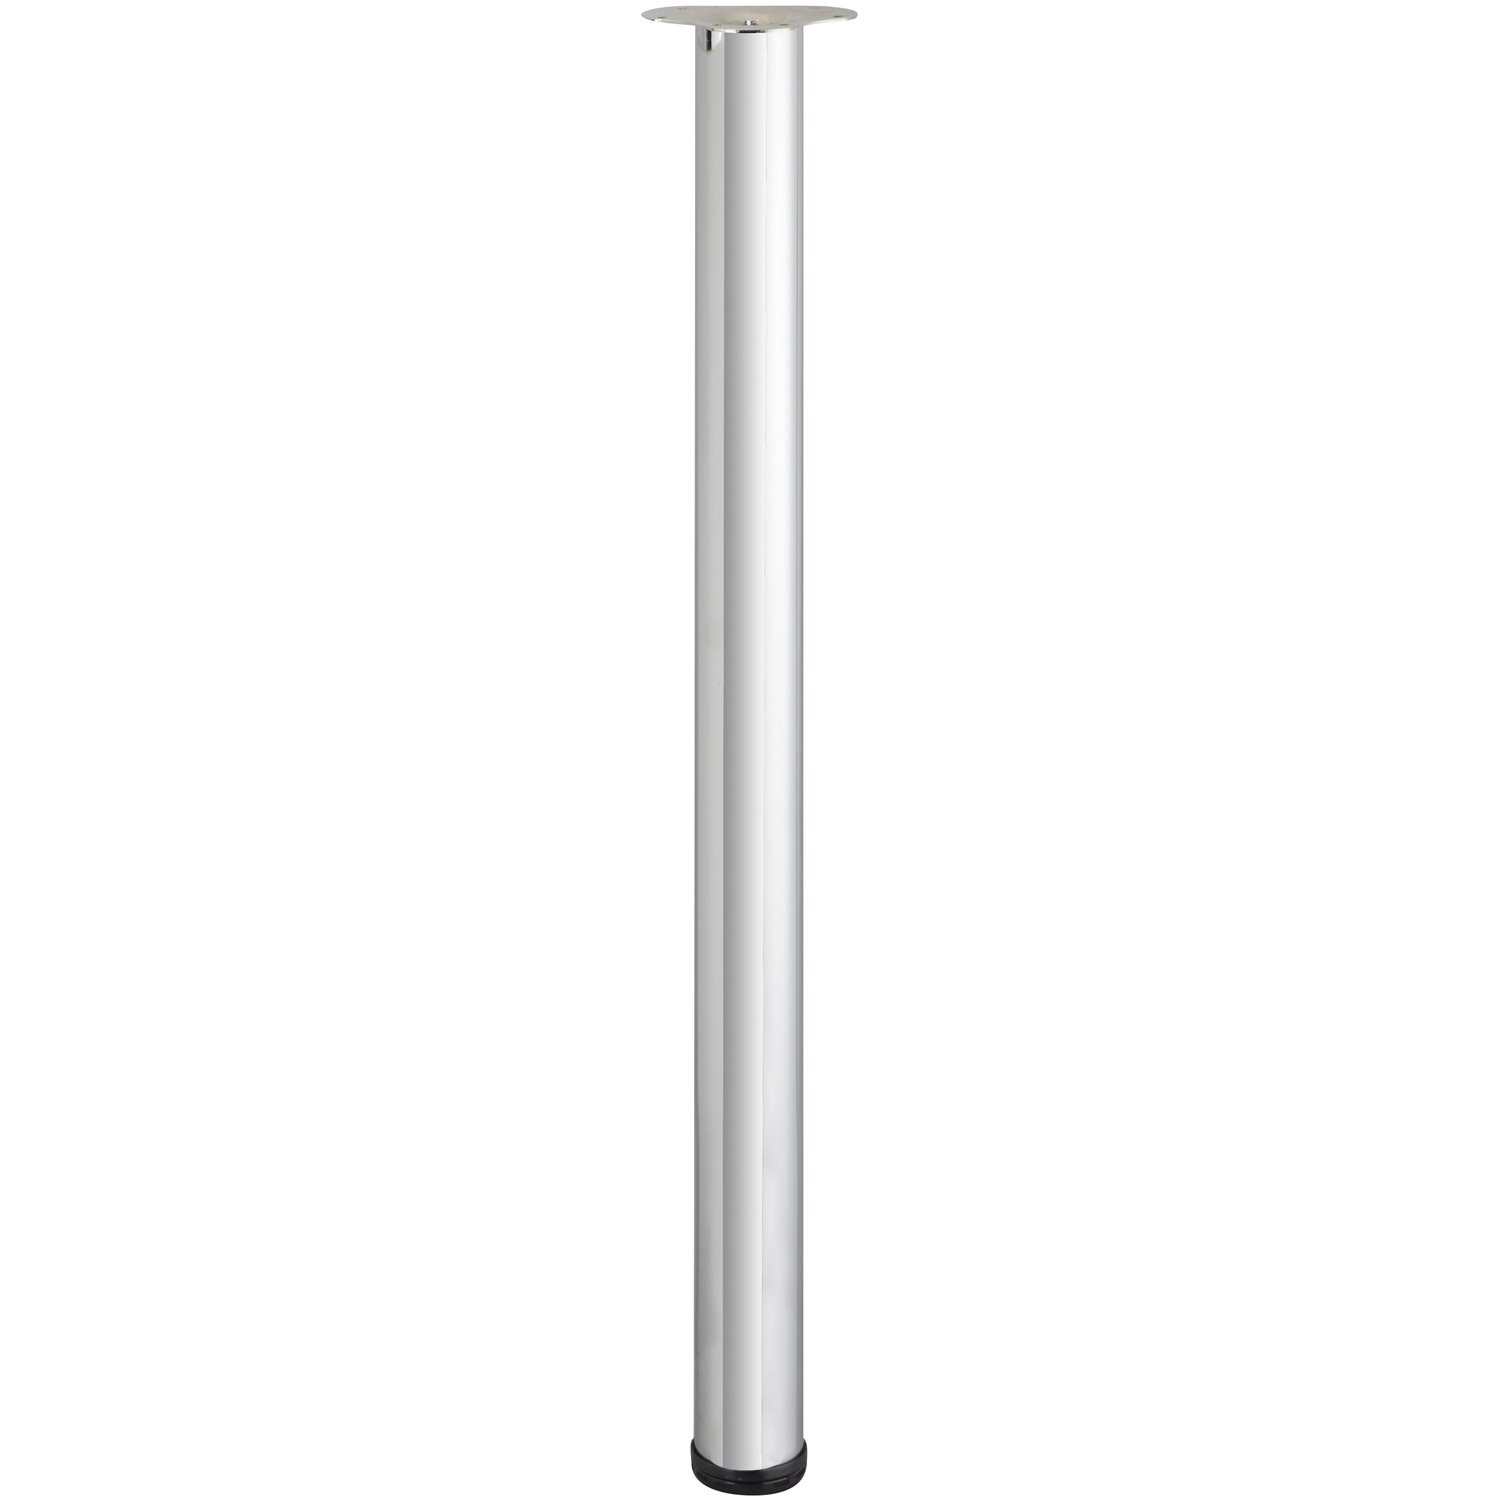 Pied de table cylindrique r glable acier chrom gris de for Pied de table cuisine leroy merlin